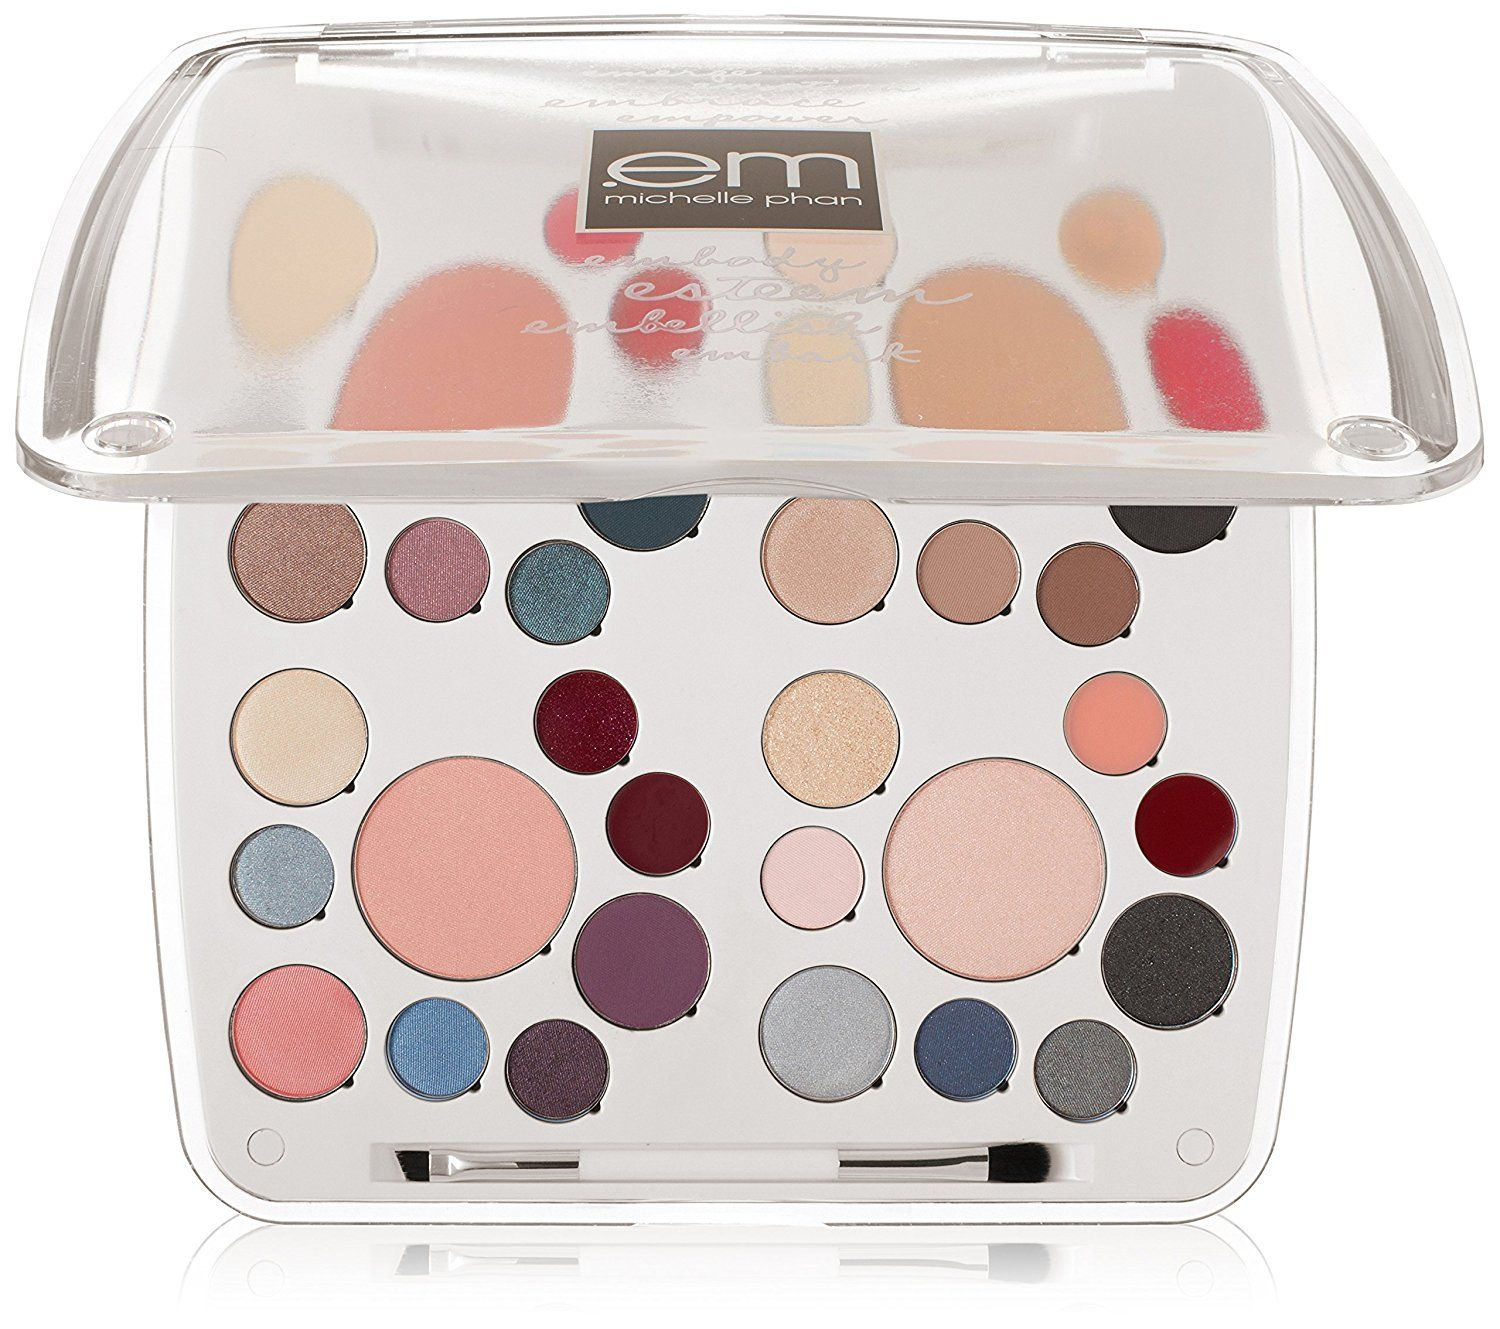 em michelle phan The Life Palette This is an Amazon